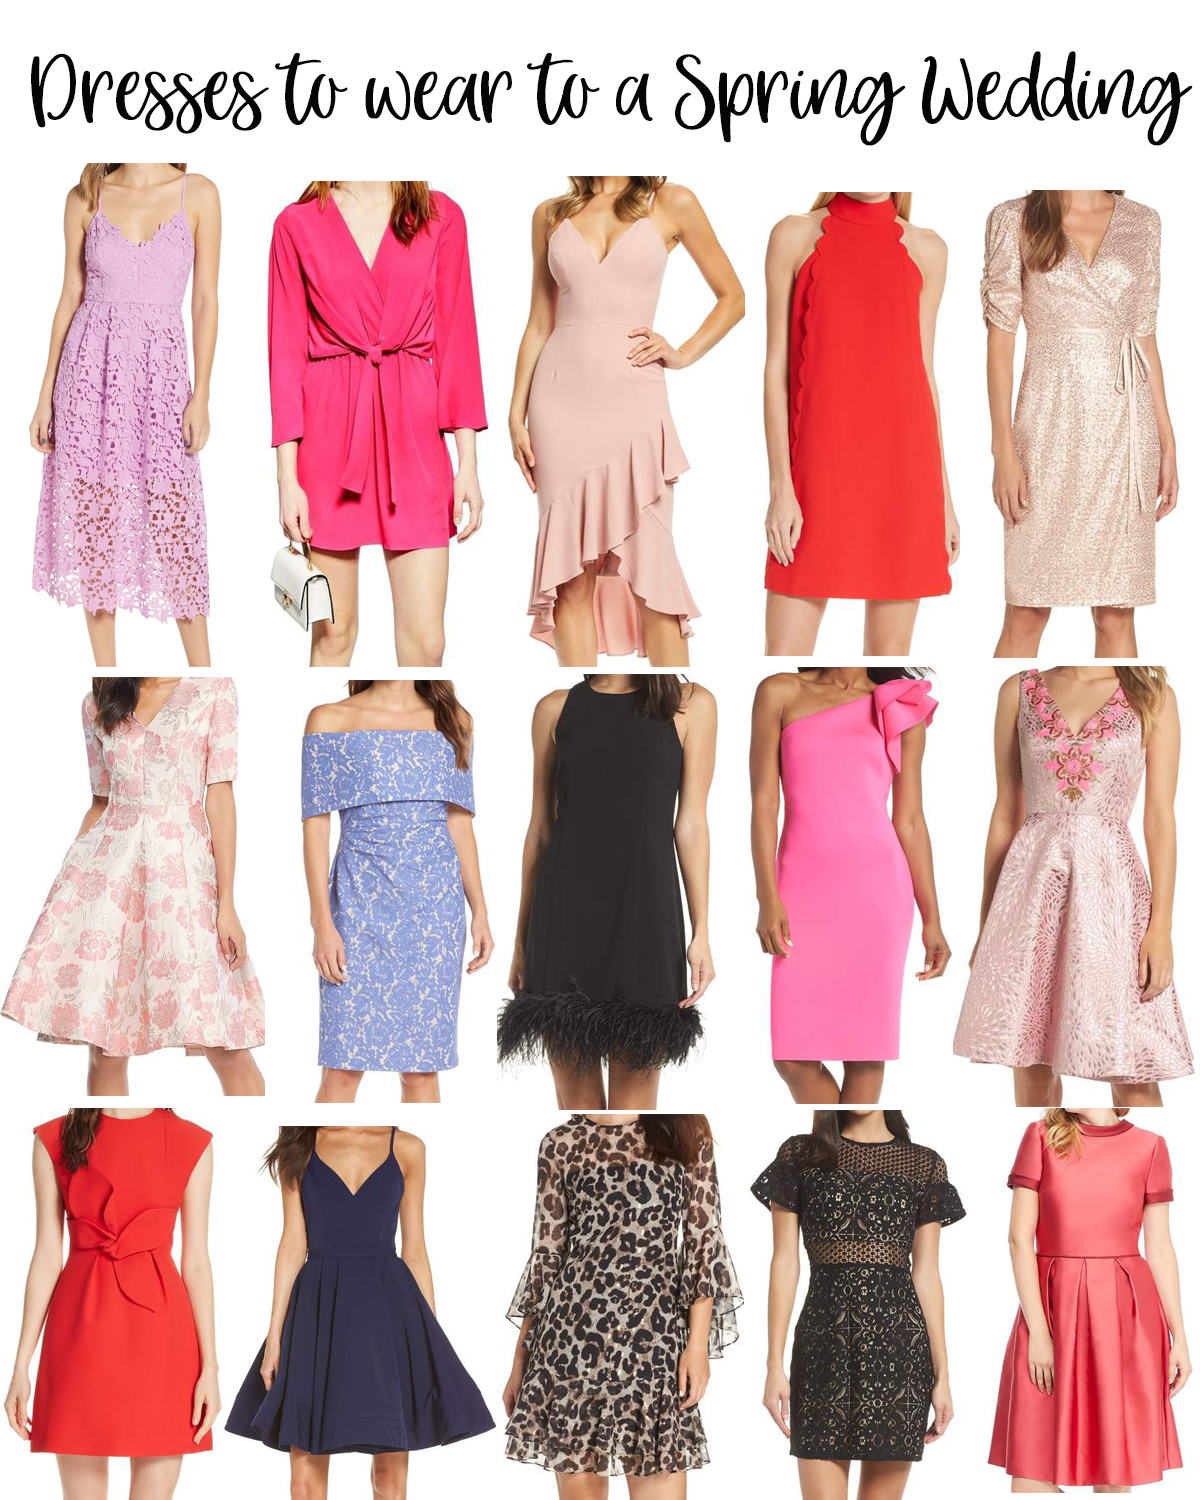 Dresses To Wear To A Spring Wedding Fancy Ashley